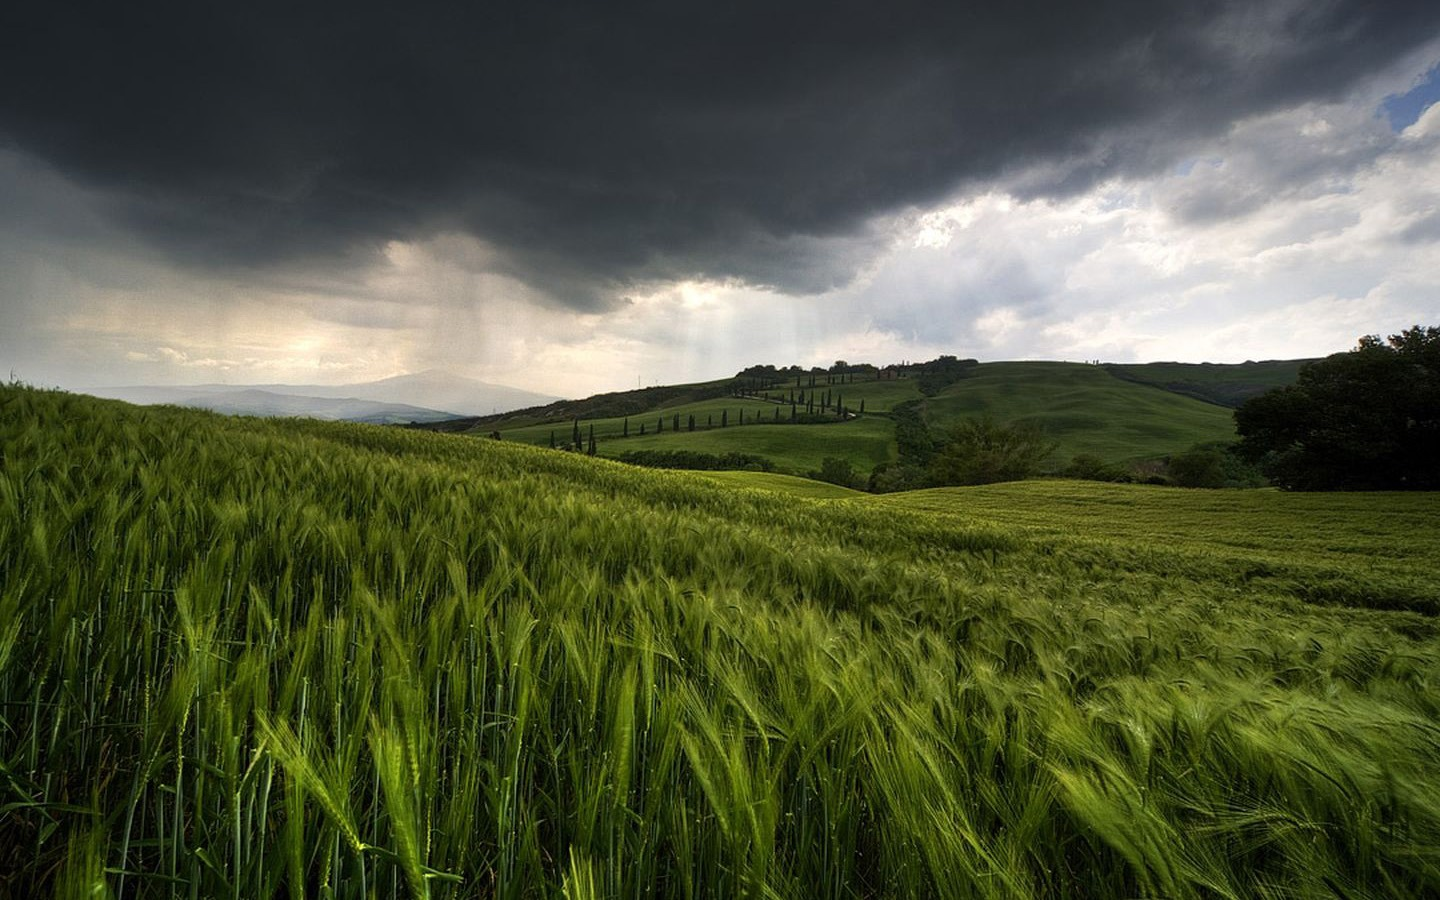 rain is coming wallpaper landscape nature wallpapers in jpg format for free download